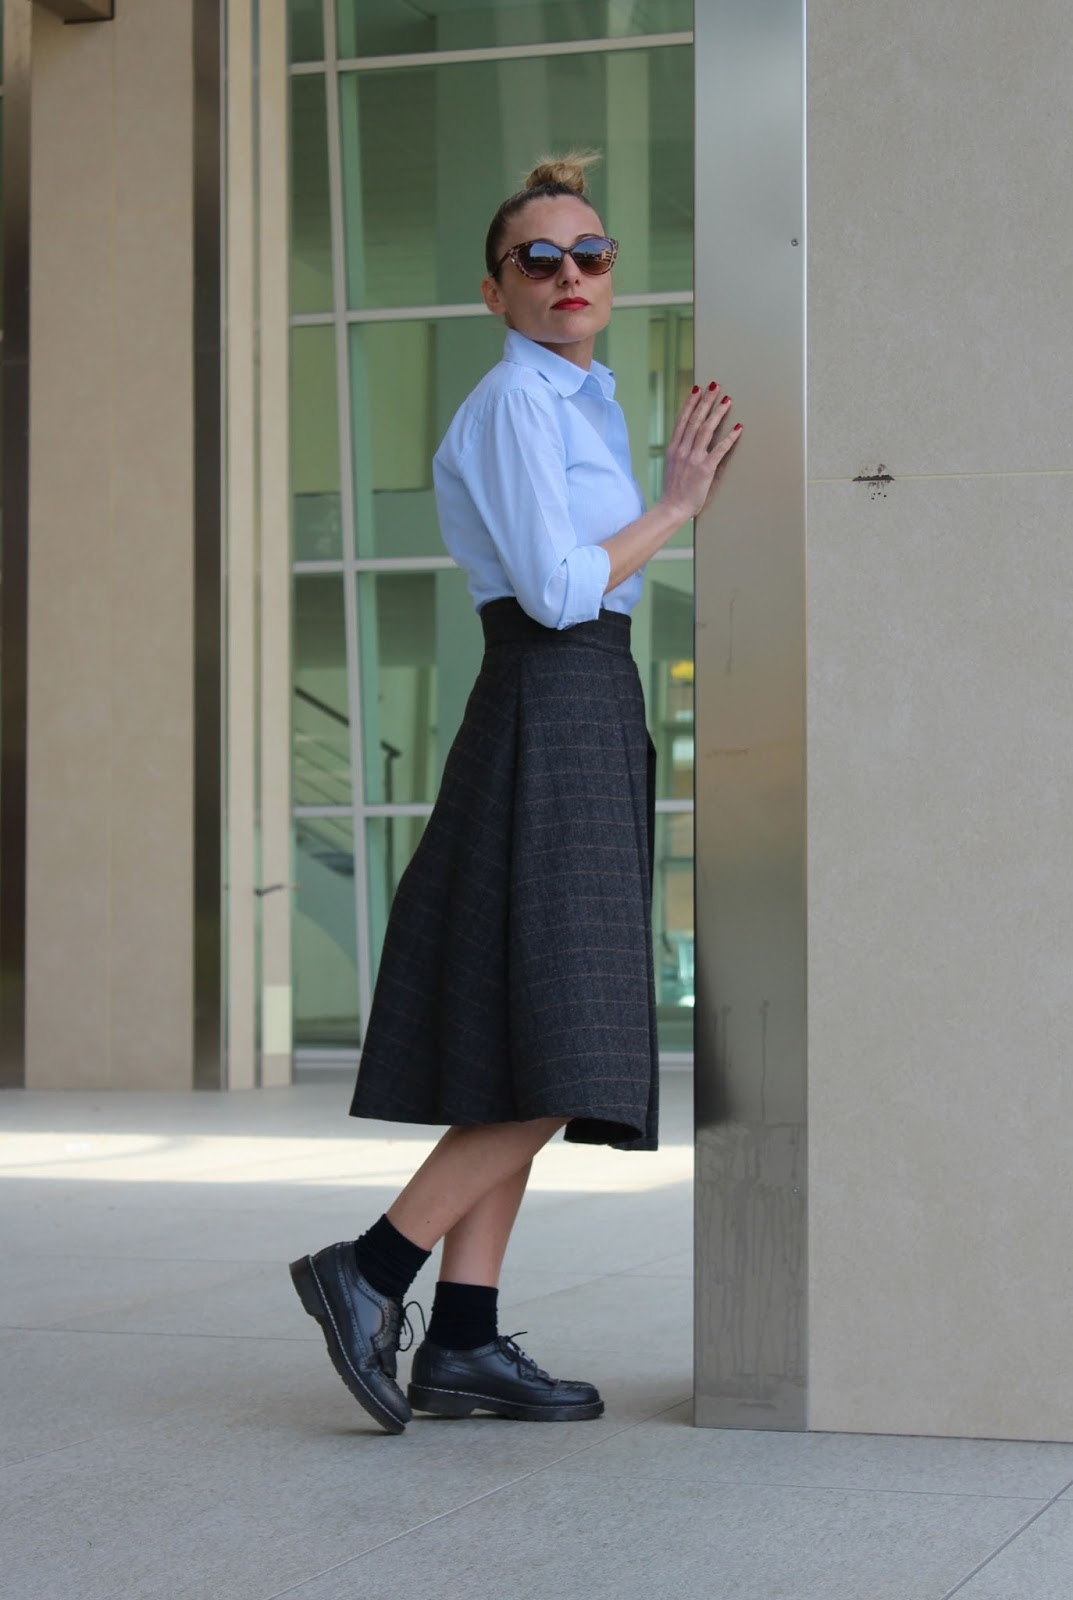 Eniwhere Fashion - Midi skirt and blue shirt